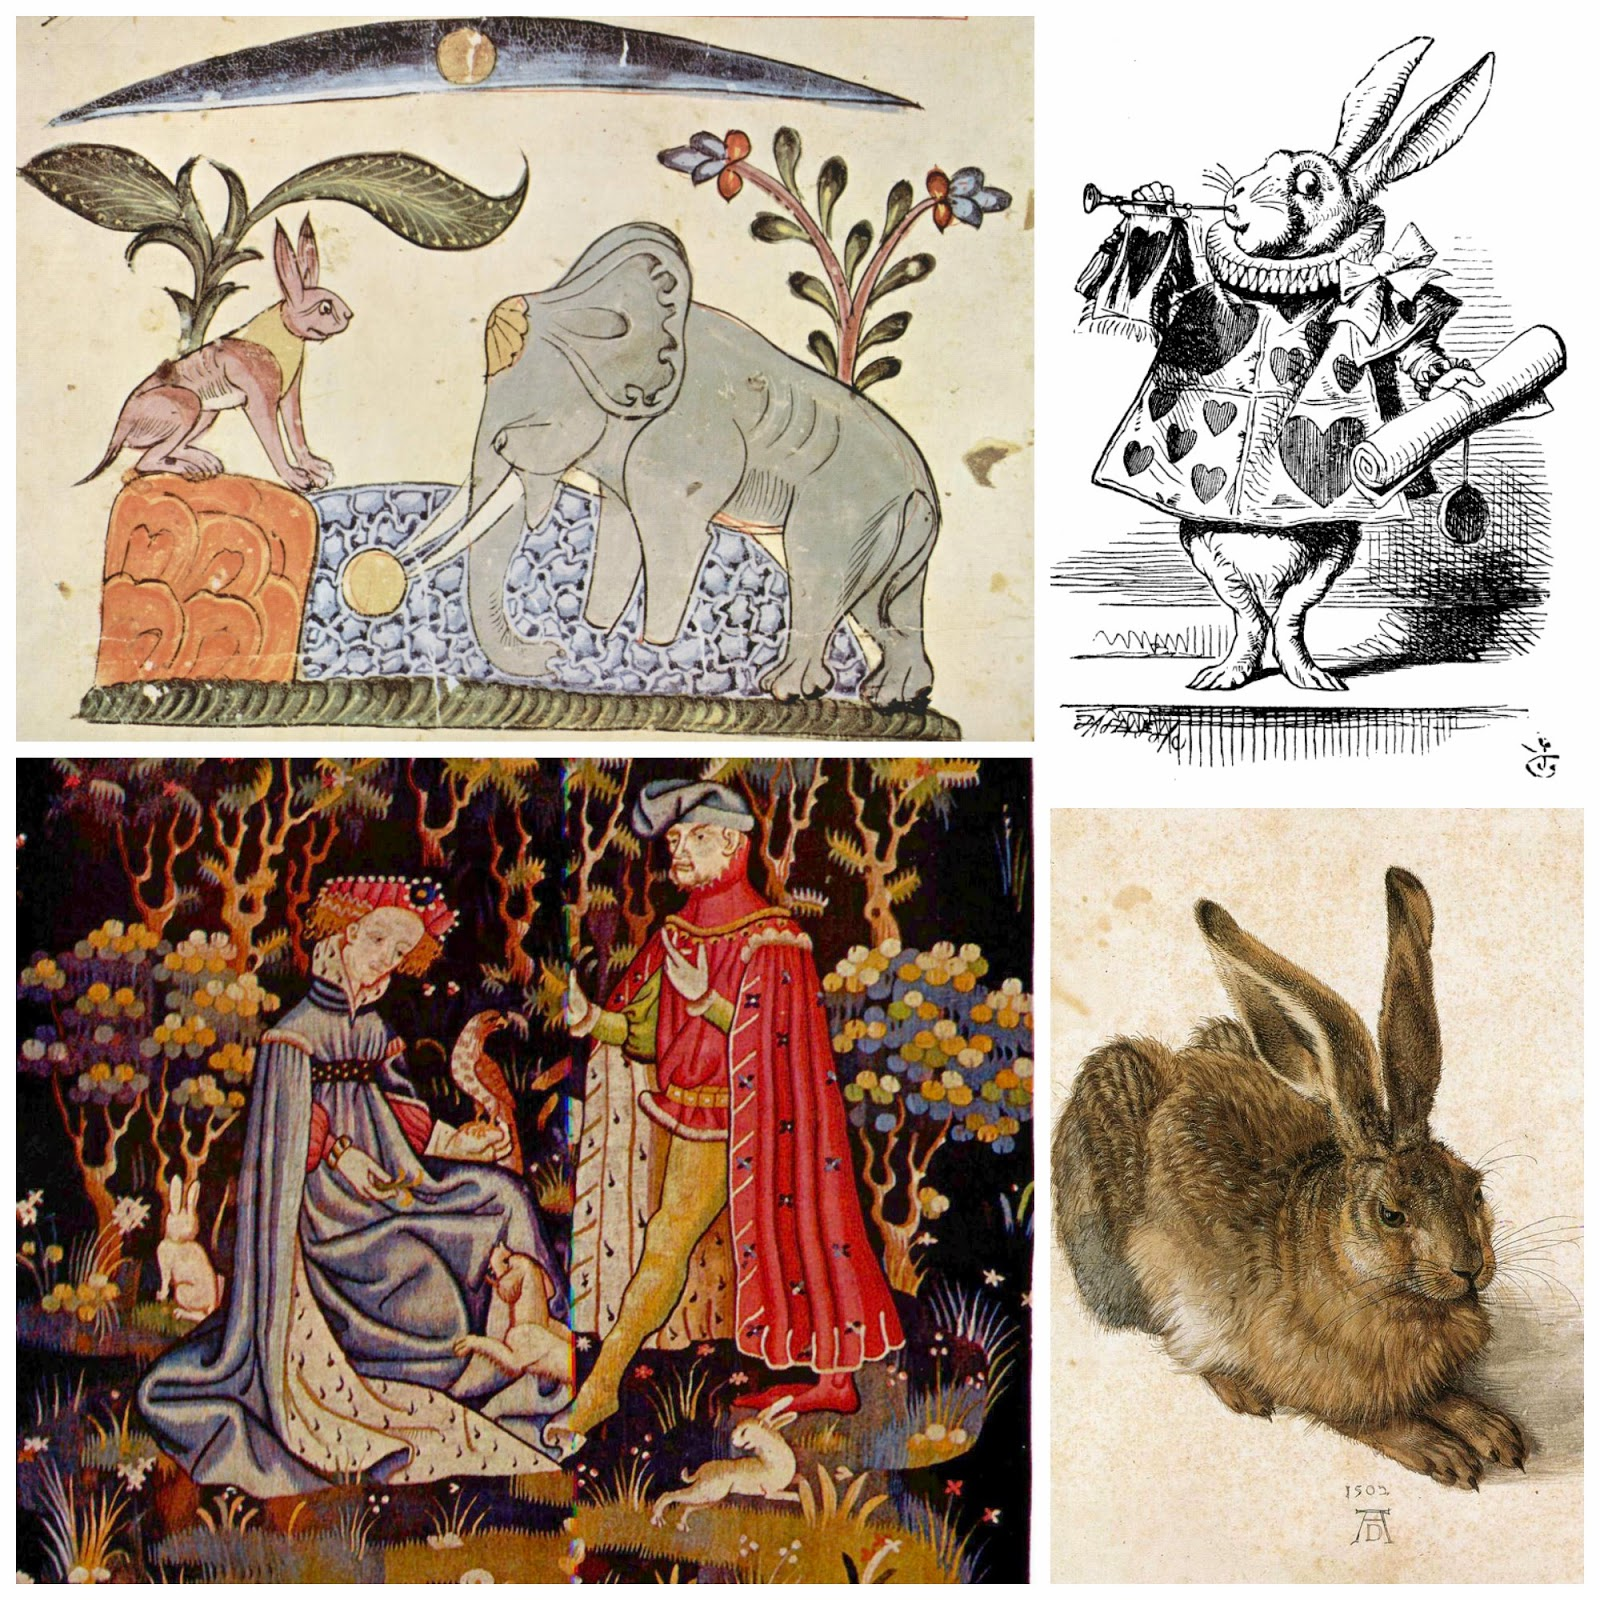 What would an exhibit on 'rabbits' look like? All of these pieces would be tagged by content as 'rabbit', yet they all have very different meanings, contexts, and interpretations.